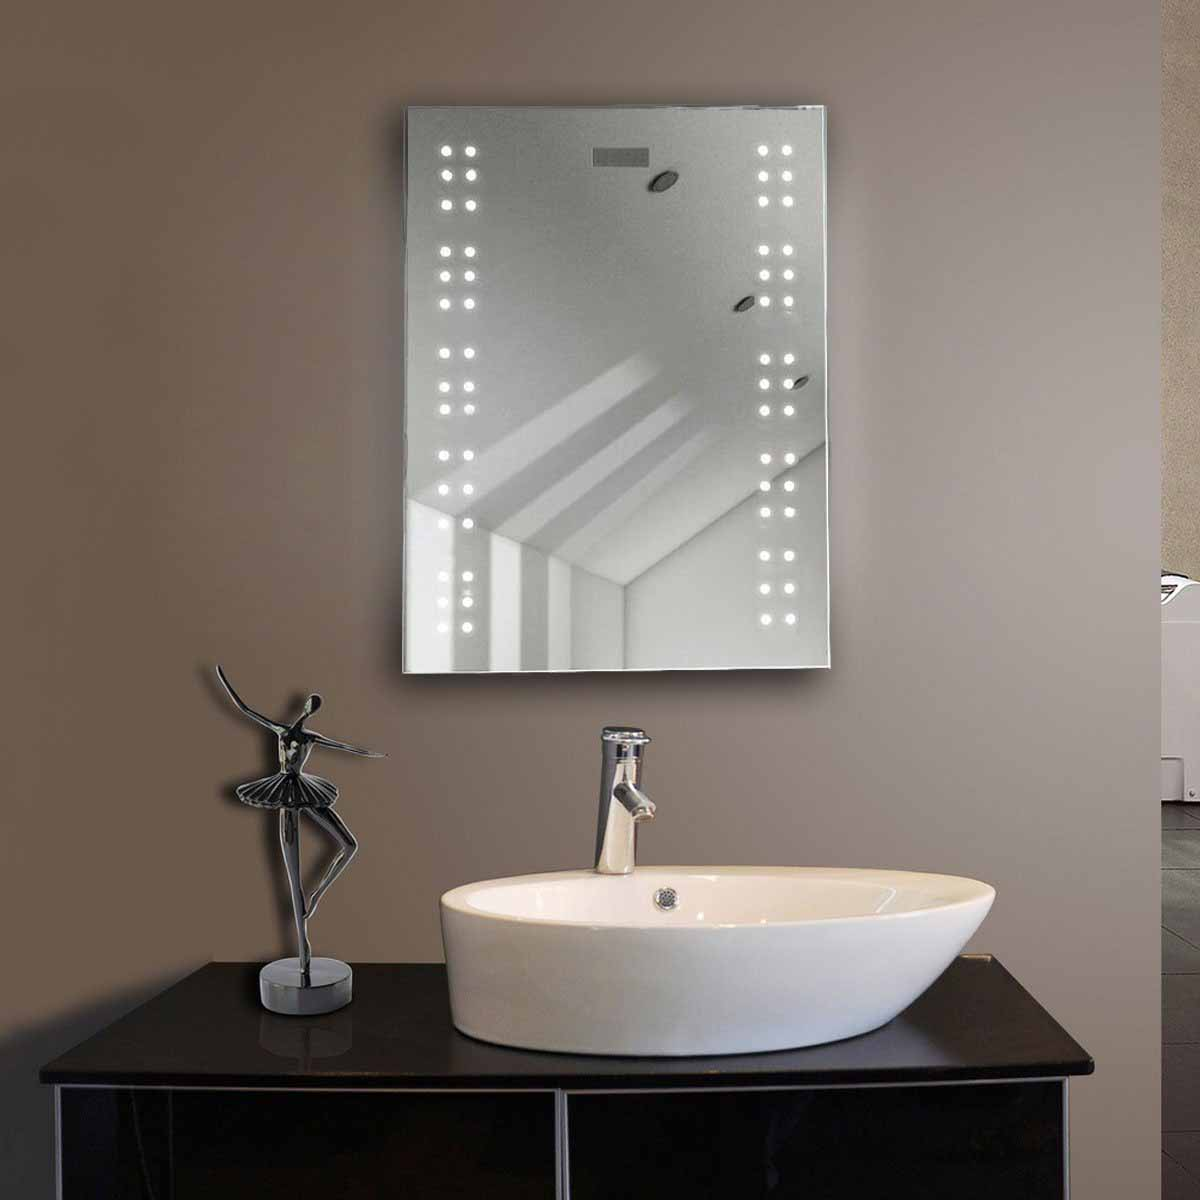 Vanity Planet Led Light Review : Backlit Bathroom Vanity Mirrors - Backlit Bathroom Vanity Mirrors Reviews, Bathroom Mirror Light ...